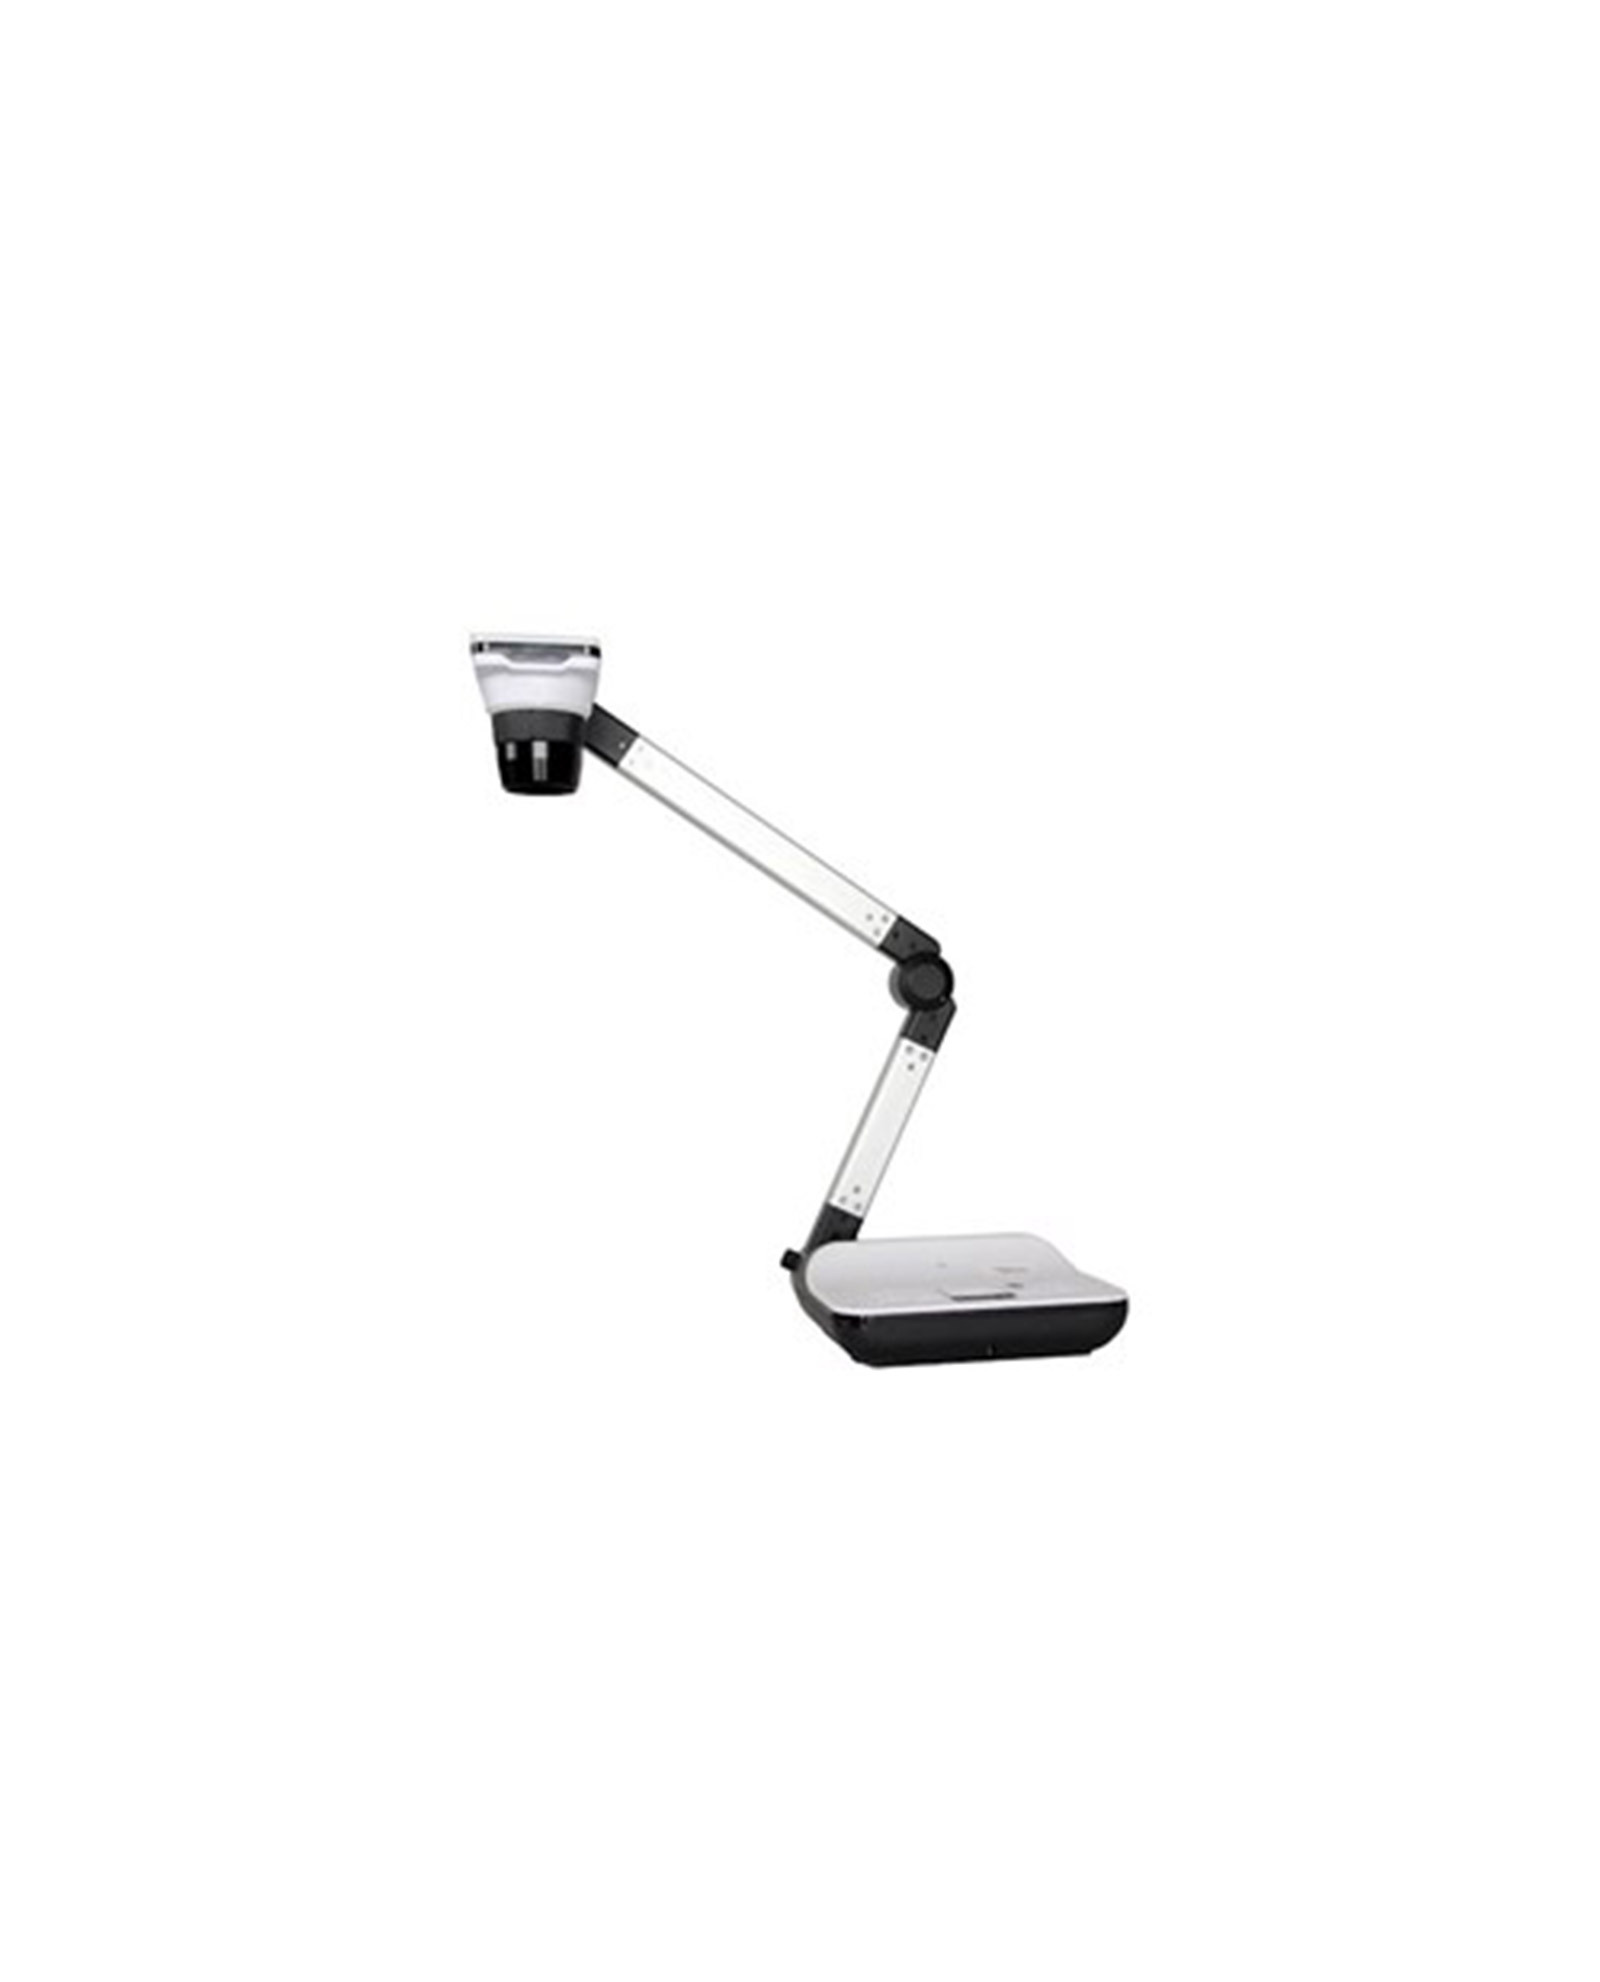 Optoma Dc550 Document Camera 8mp Fhd With Stand 2